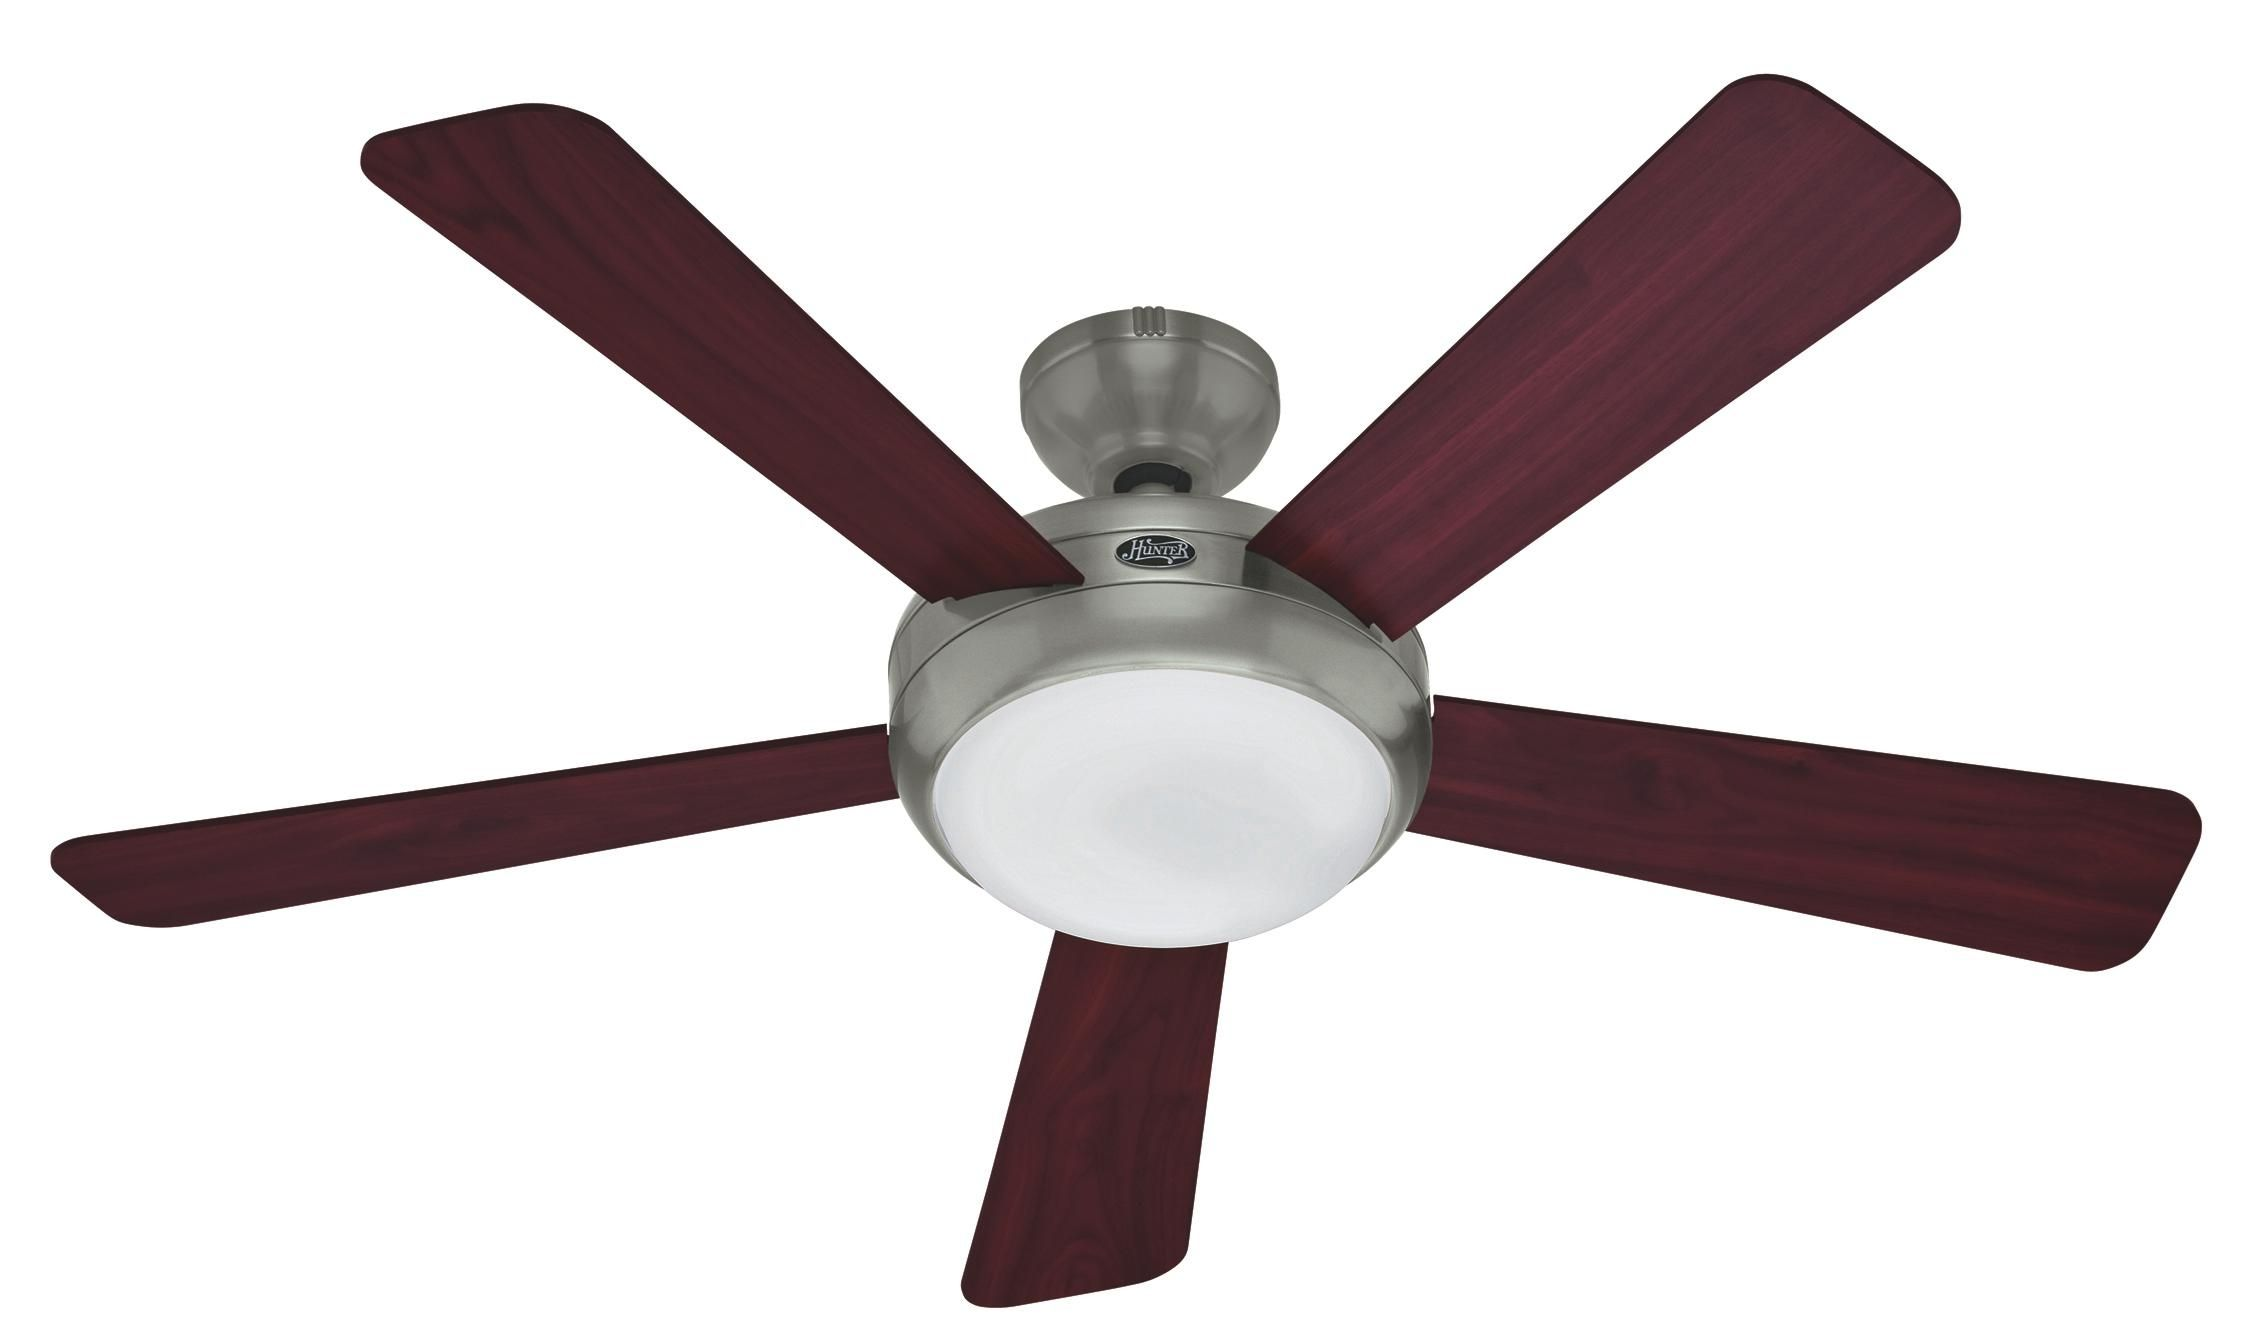 Hunter Fan Palermo 59048 Do You Realize That By Simply Year Round Making Use Of Your Ceiling It Is Likely To Conserve Just As Much Off A